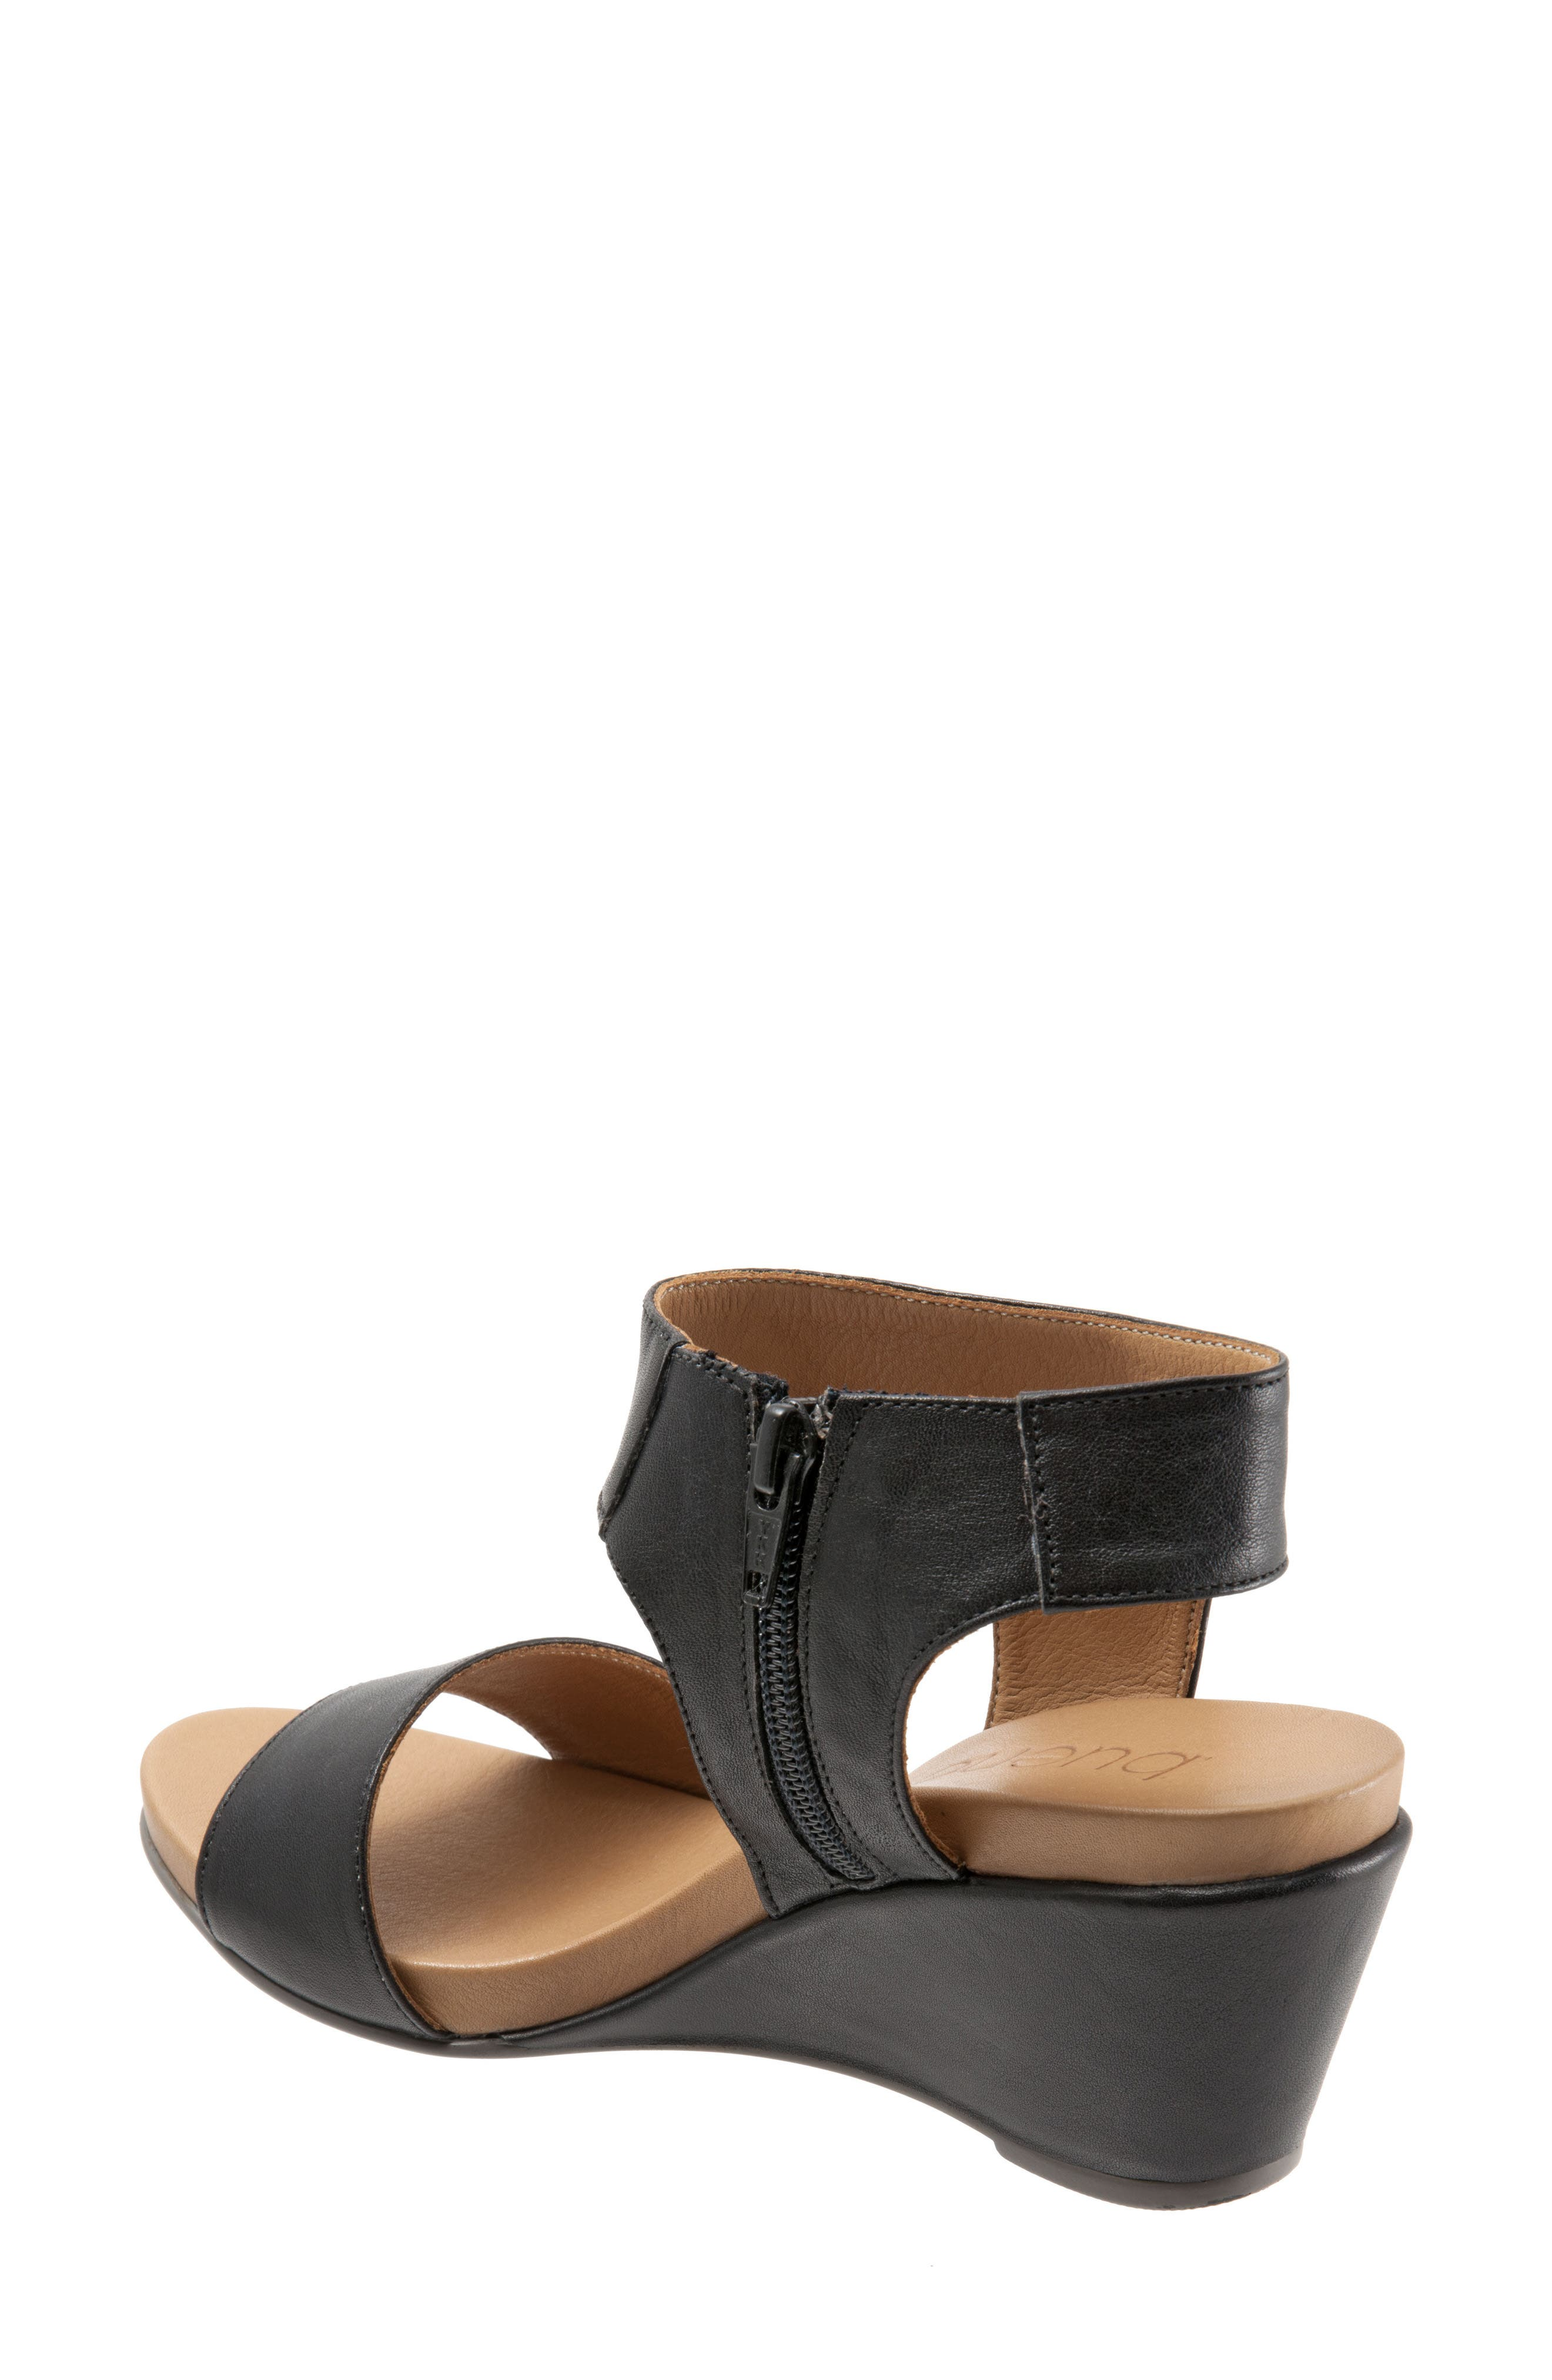 Ida Wedge Sandal,                             Alternate thumbnail 2, color,                             Black Leather